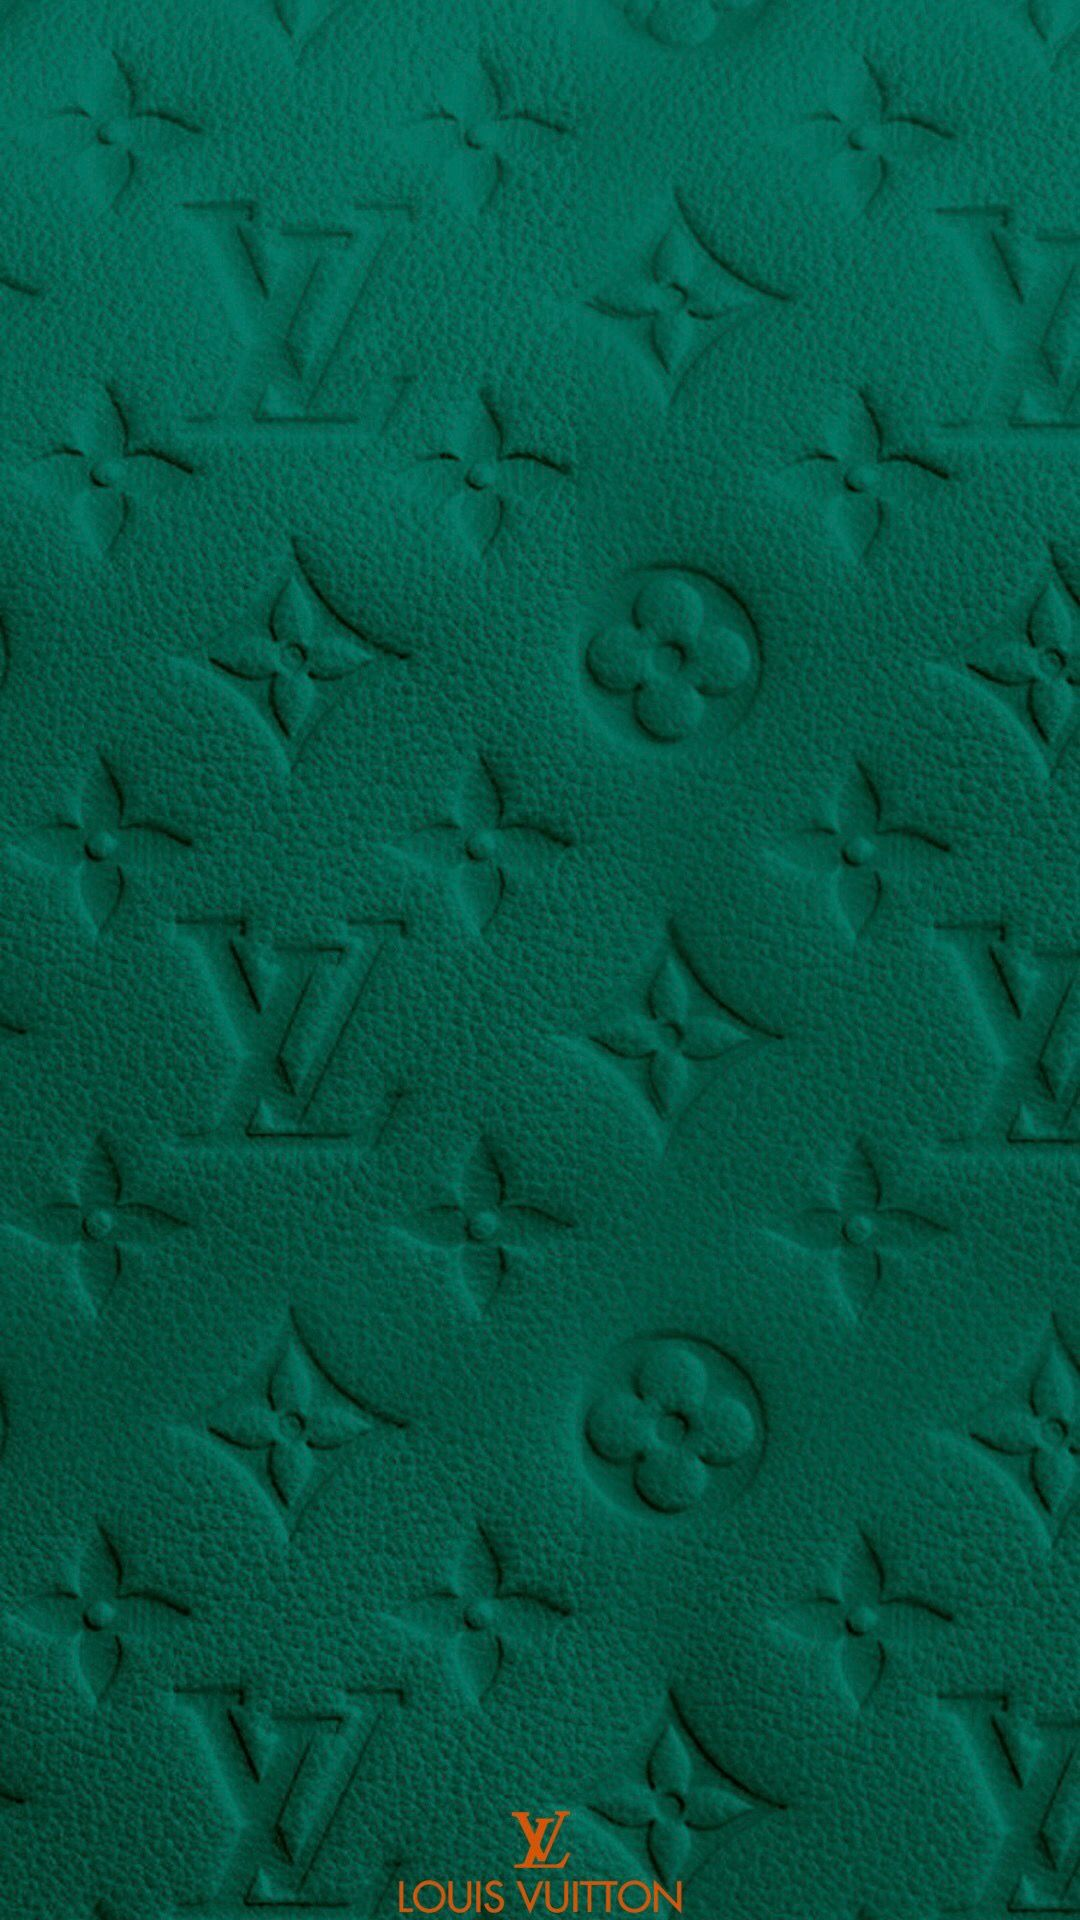 Pin By Jalacy Sims On Wallpapers With Images Louis Vuitton Iphone Wallpaper Louis Vuitton Bag Lv Monogram